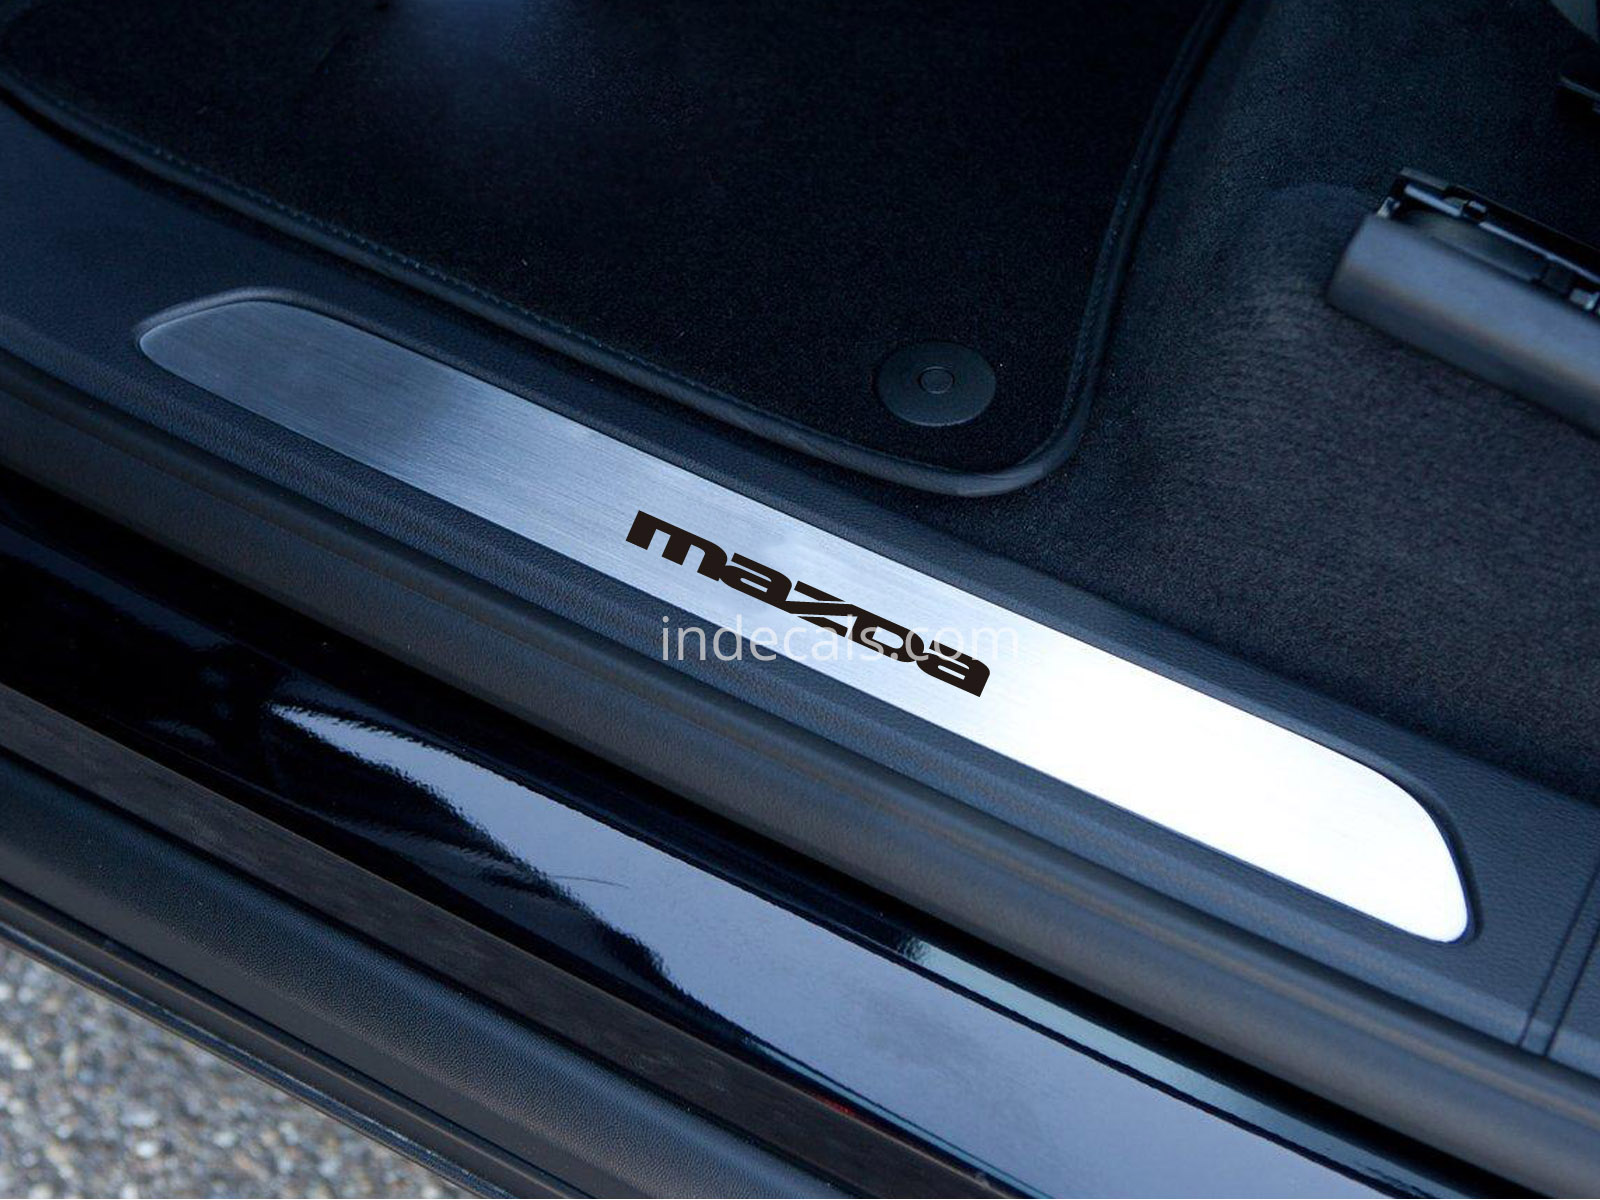 6 x Mazda Stickers for Door Sills - Black & 6 x Mazda Stickers for Door Sills - Black - indecals.com